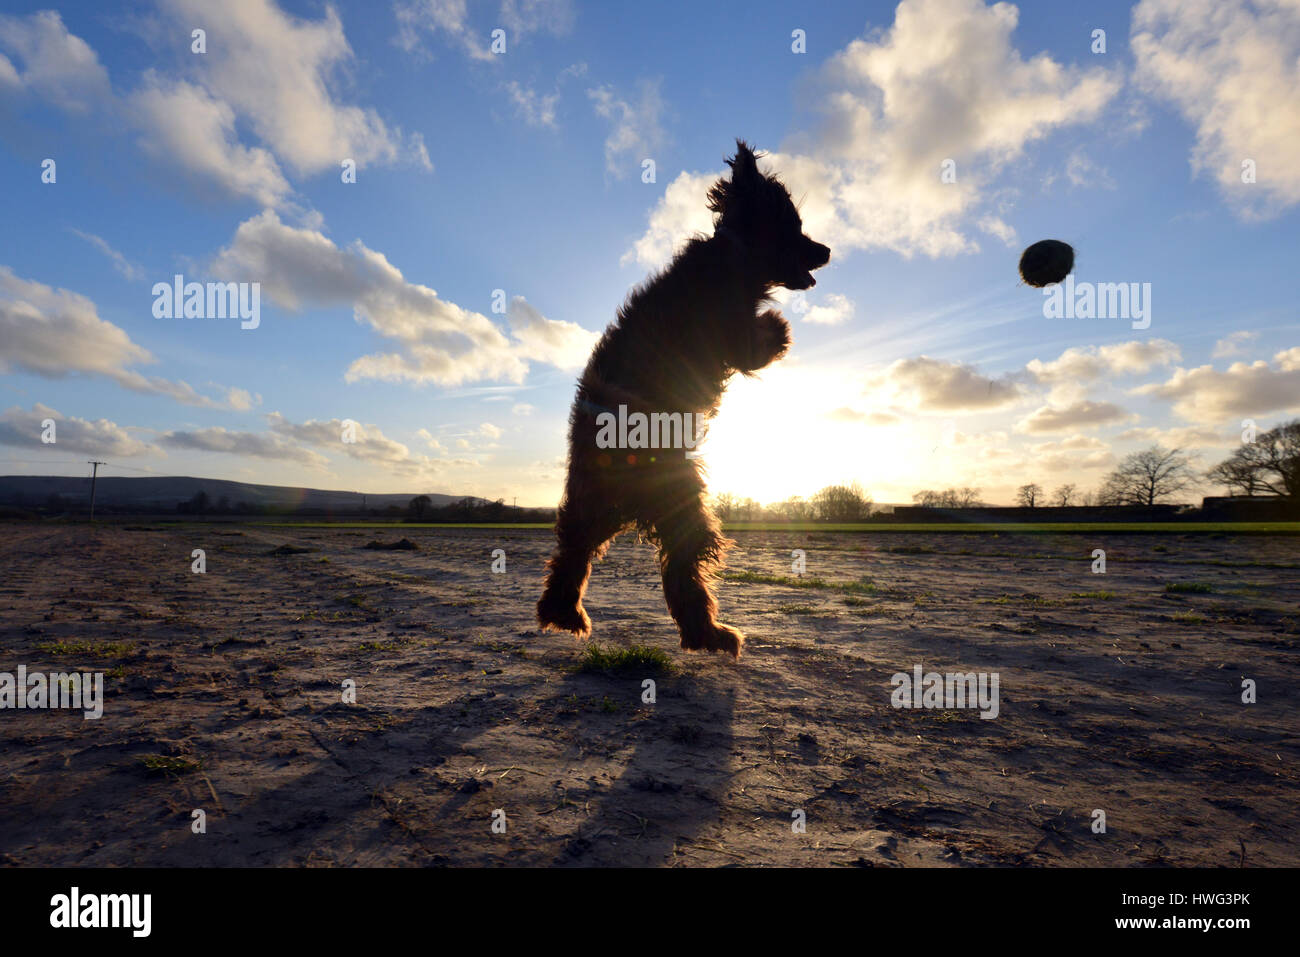 Ripe, East Sussex. 21st March 2017. Cocker spaniel leaping for a ball at the end of a bright and sunny Sussex day. Stock Photo